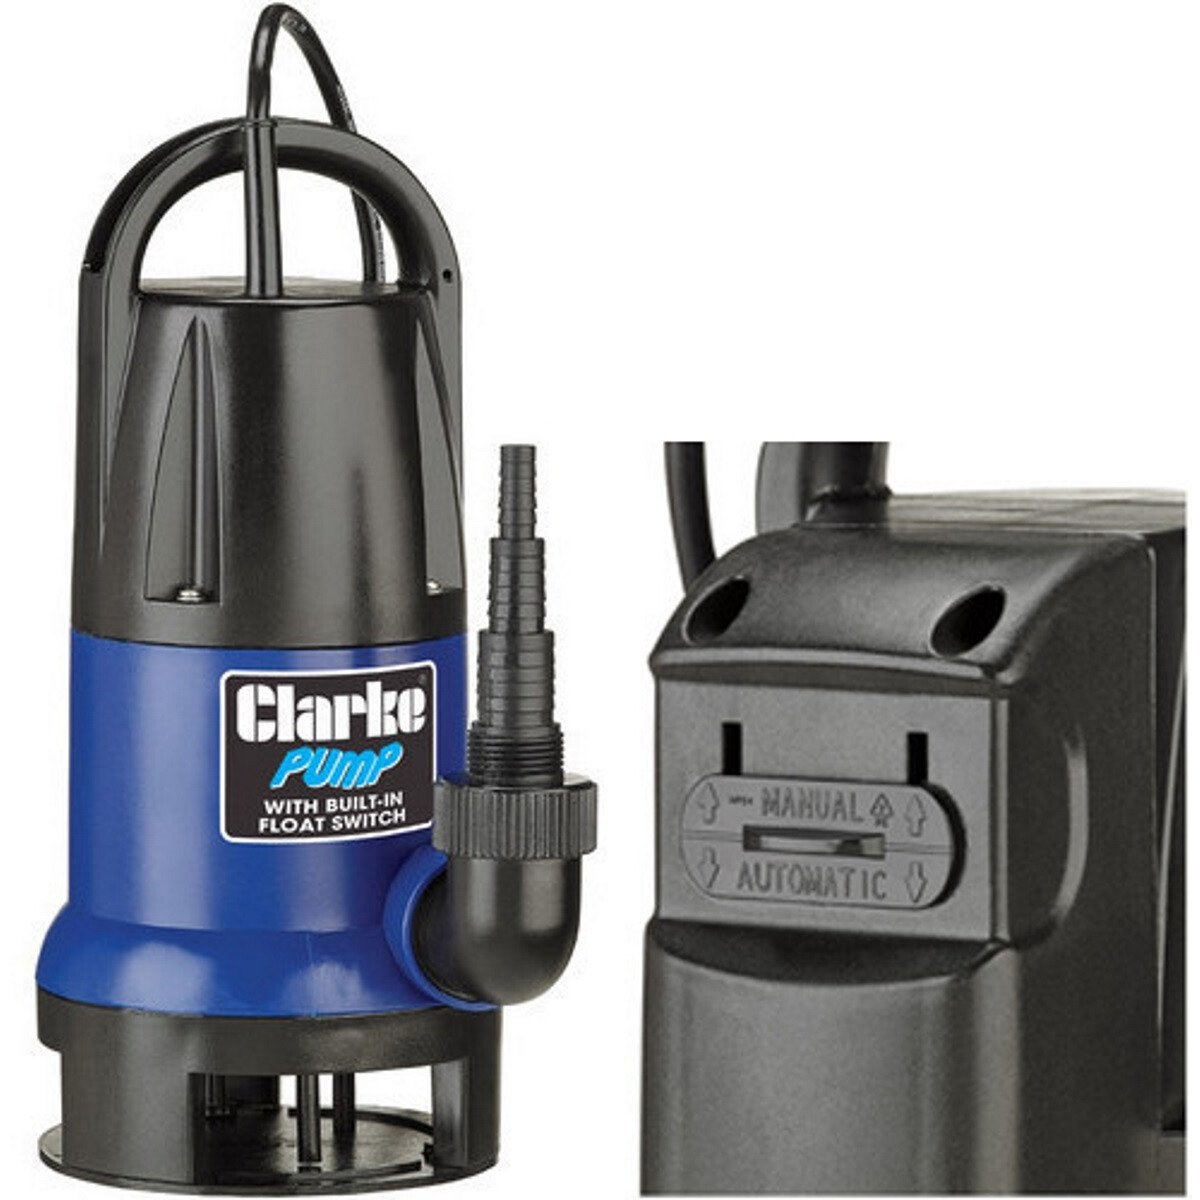 Clarke PSV5A  Dirty Water Submersible Pump with Integrated Float Switch 750W 230V 7236046